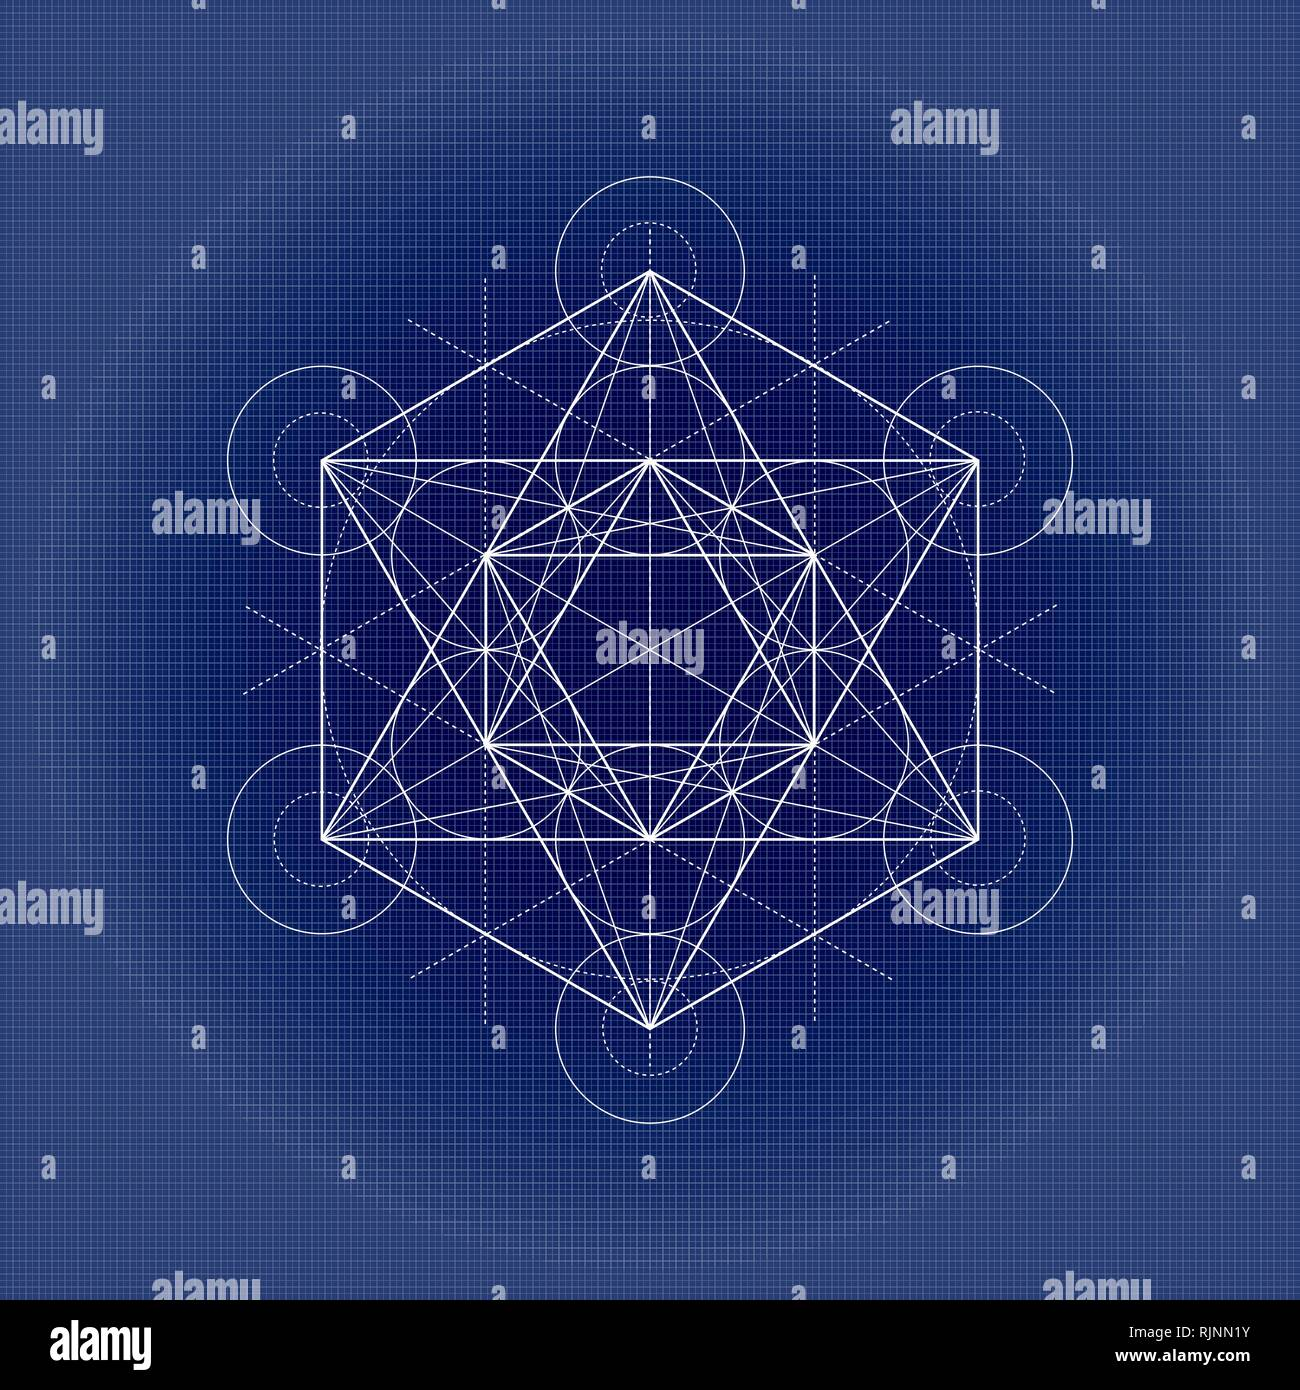 Metatrons cube, sacred geometry illustration on technical paper - Stock Image